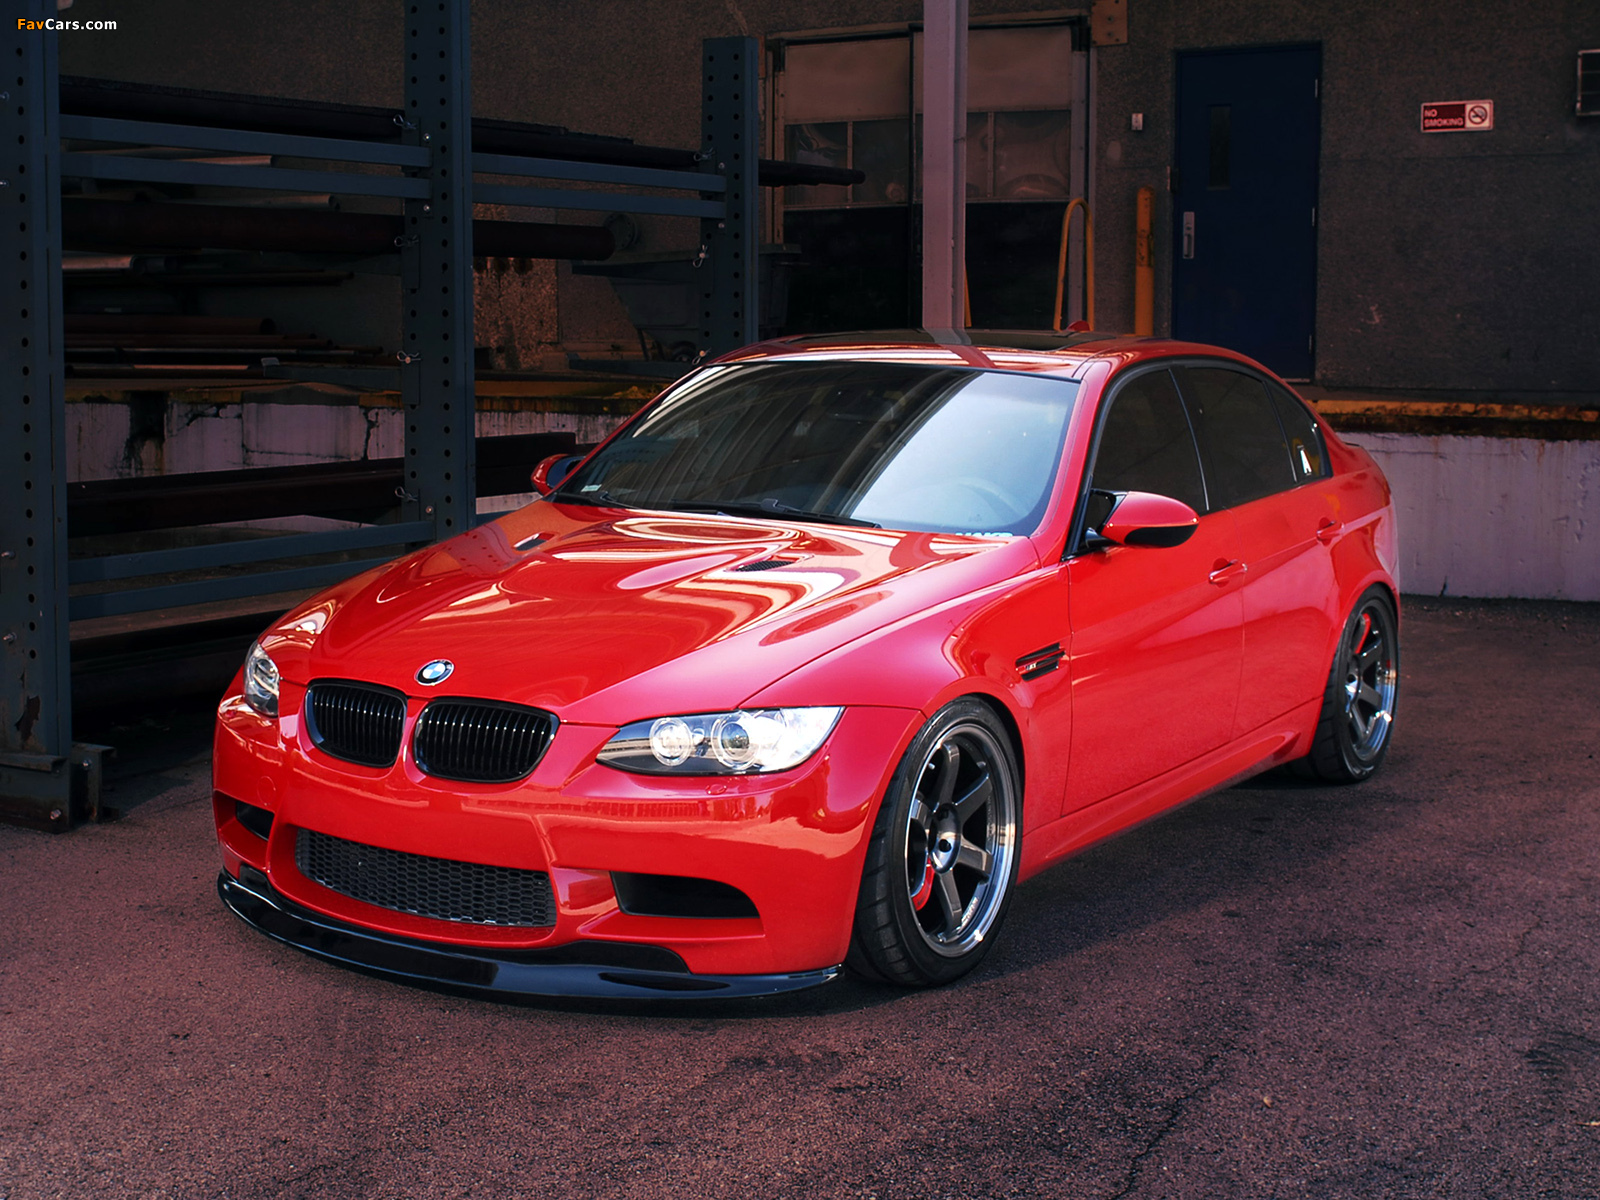 Ind Bmw M3 Sedan Red Death E90 2010 Wallpapers 1600x1200